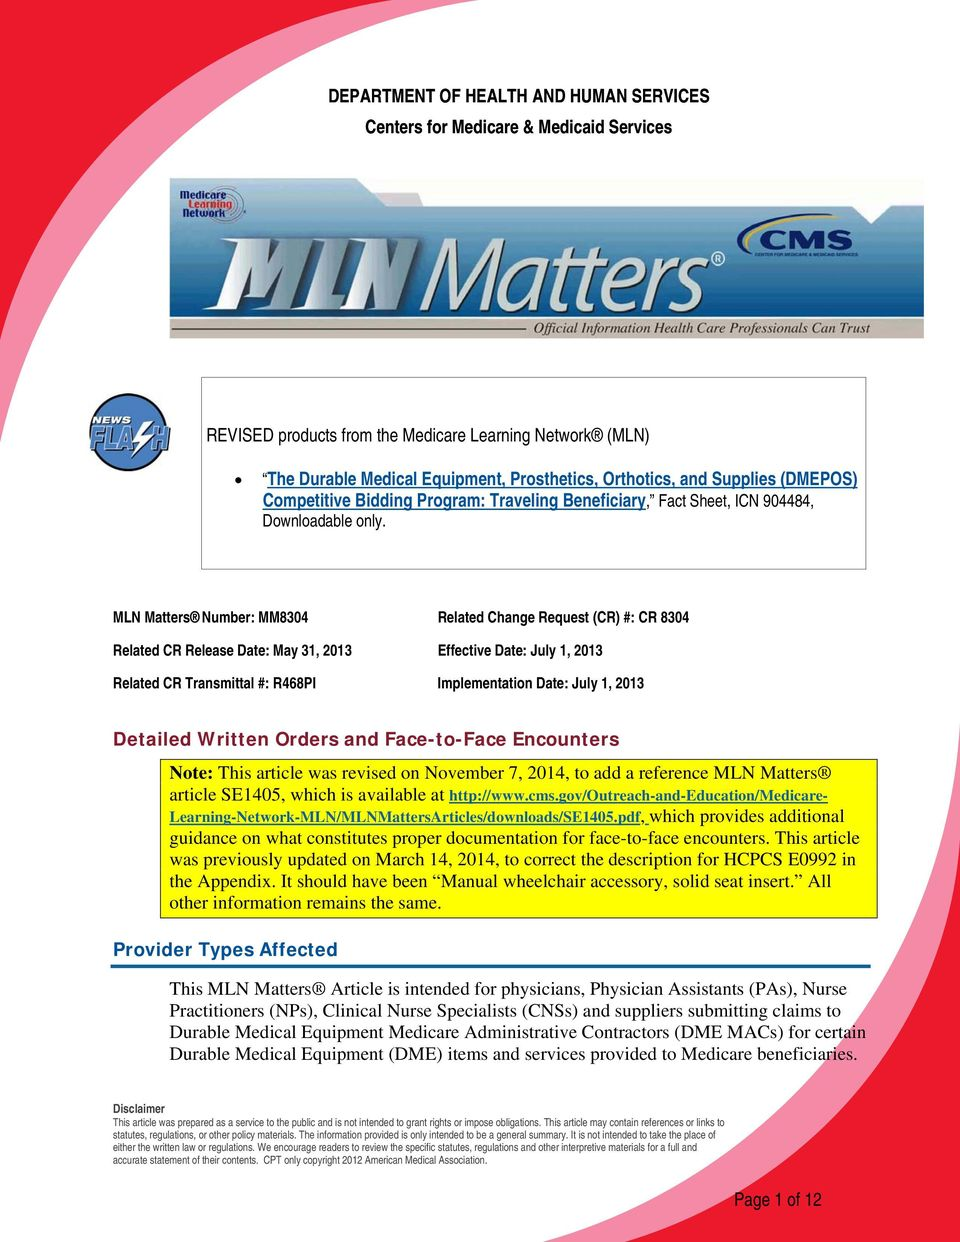 MLN Matters Number: MM8304 Related Change Request (CR) #: CR 8304 Related CR Release Date: May 31, 2013 Effective Date: July 1, 2013 Related CR Transmittal #: R468PI Implementation Date: July 1, 2013